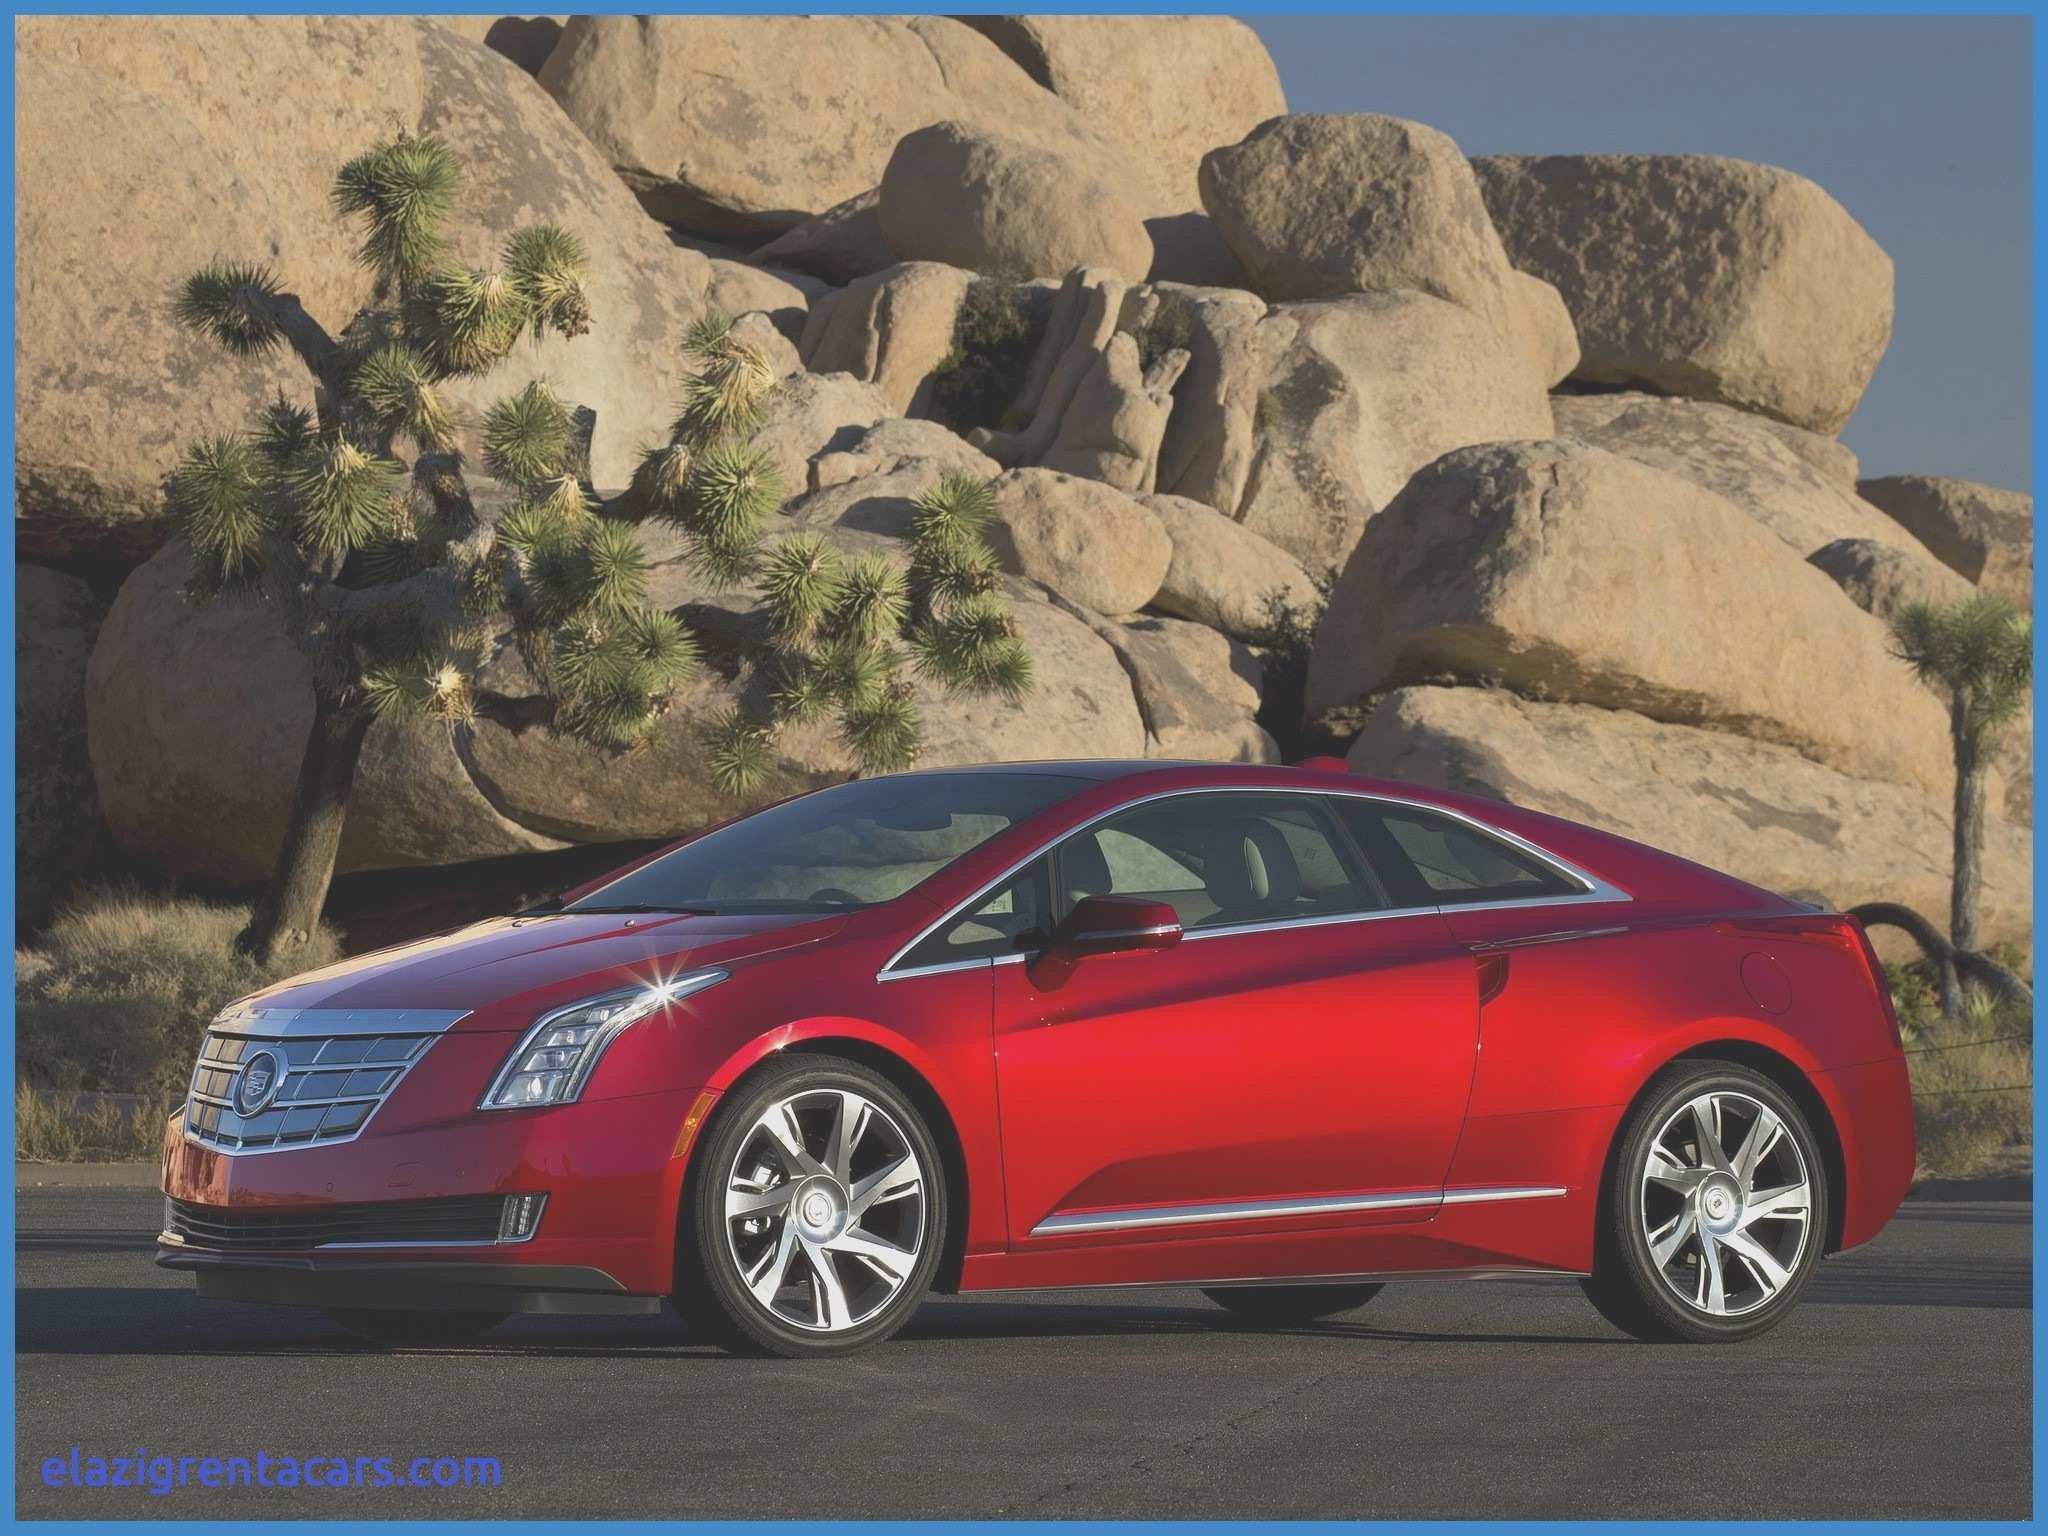 62 New 2020 Cadillac ELR S Reviews by 2020 Cadillac ELR S